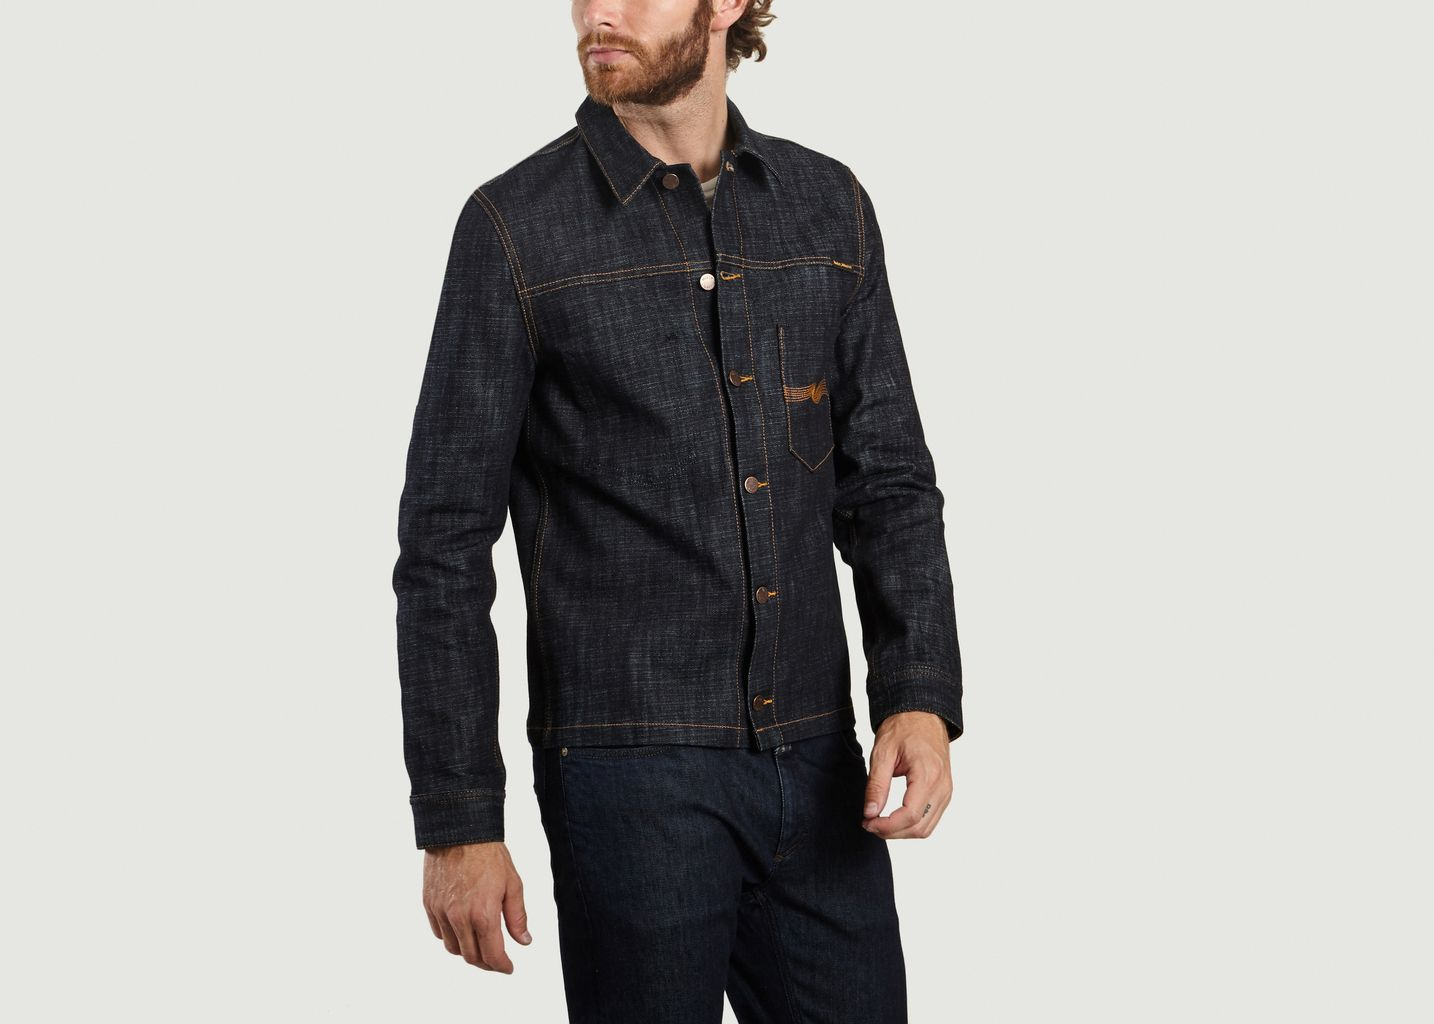 Veste En Jean Ronny Dry Cross Denim - Nudie Jeans